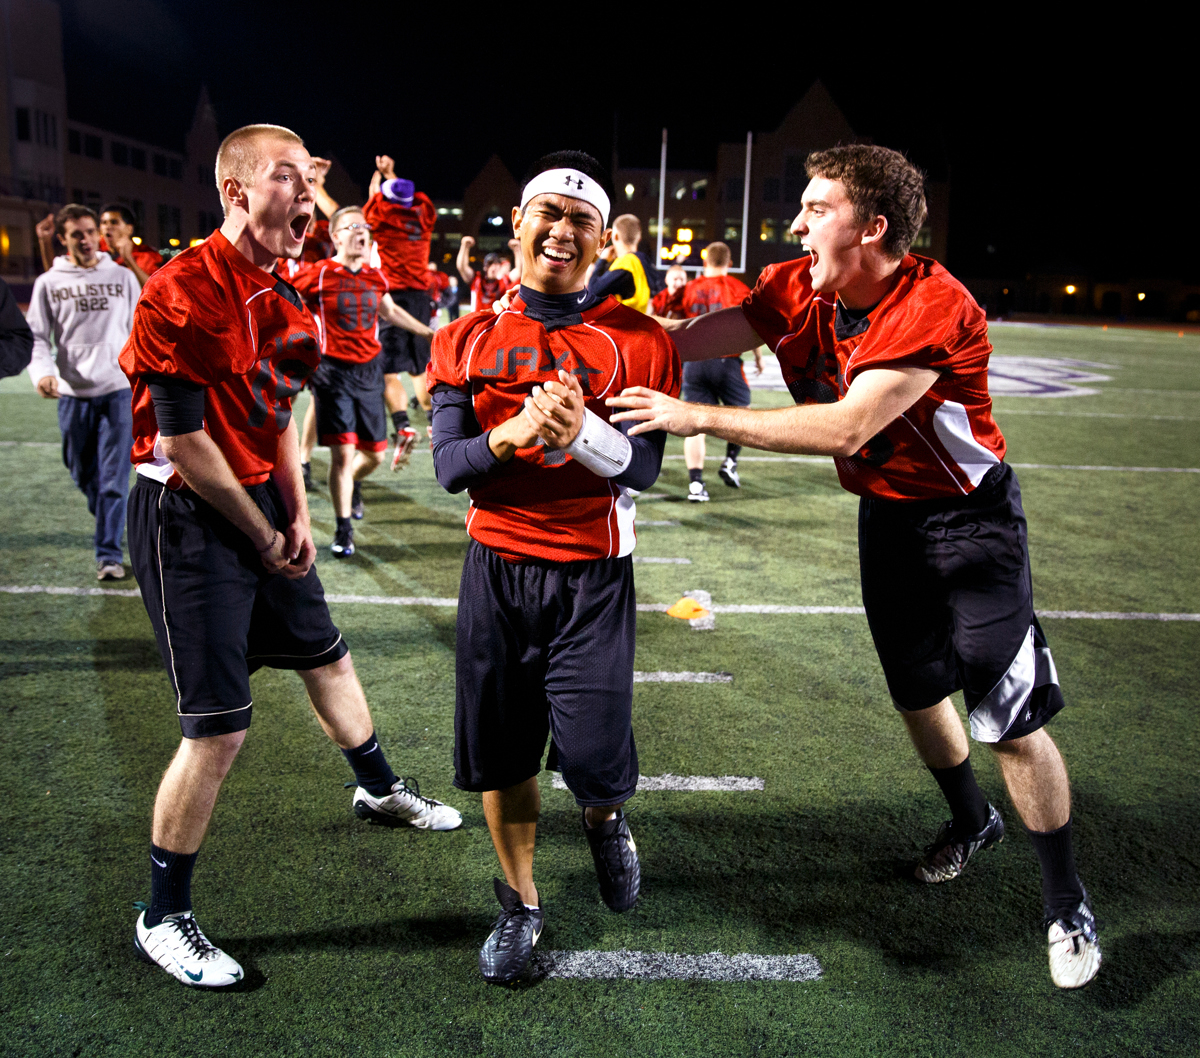 From left: SJV seminarians Greg Parent, Vince Fernandez, and James Smyth celebrate a touchdown. (Photo by Mike Ekern '02)